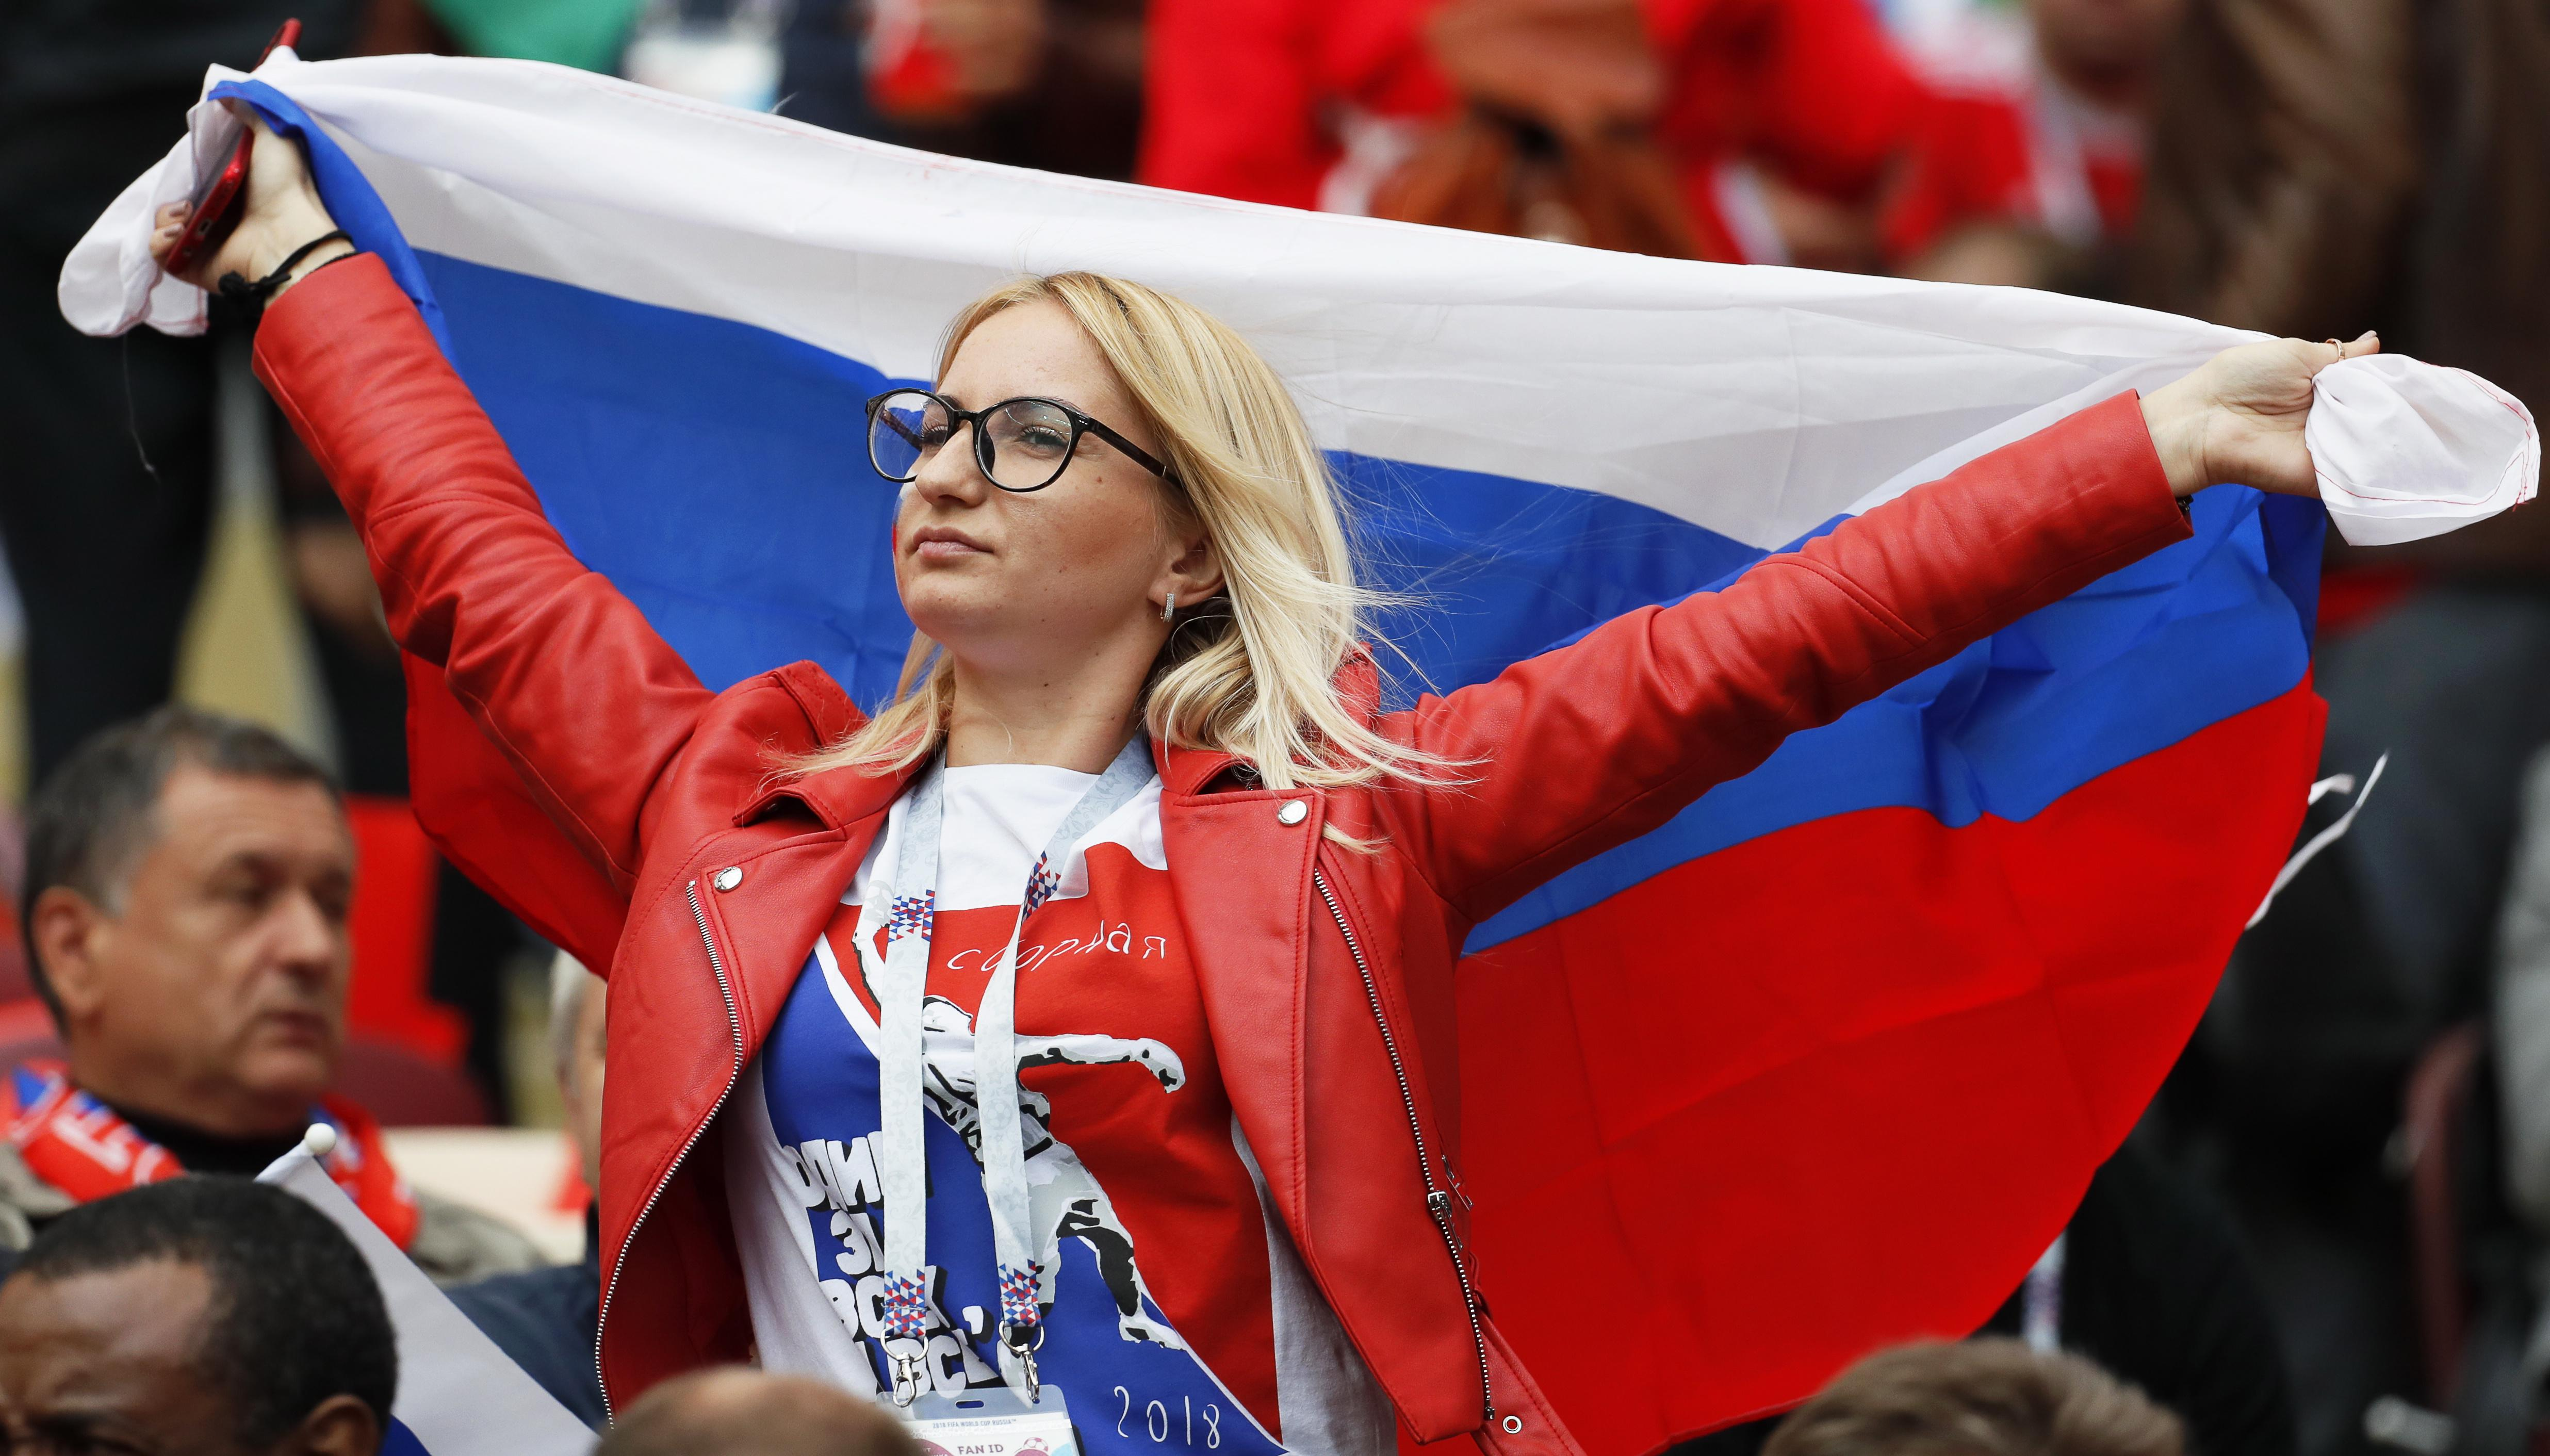 A Russian fan flying the flag before kick-off on Thursday